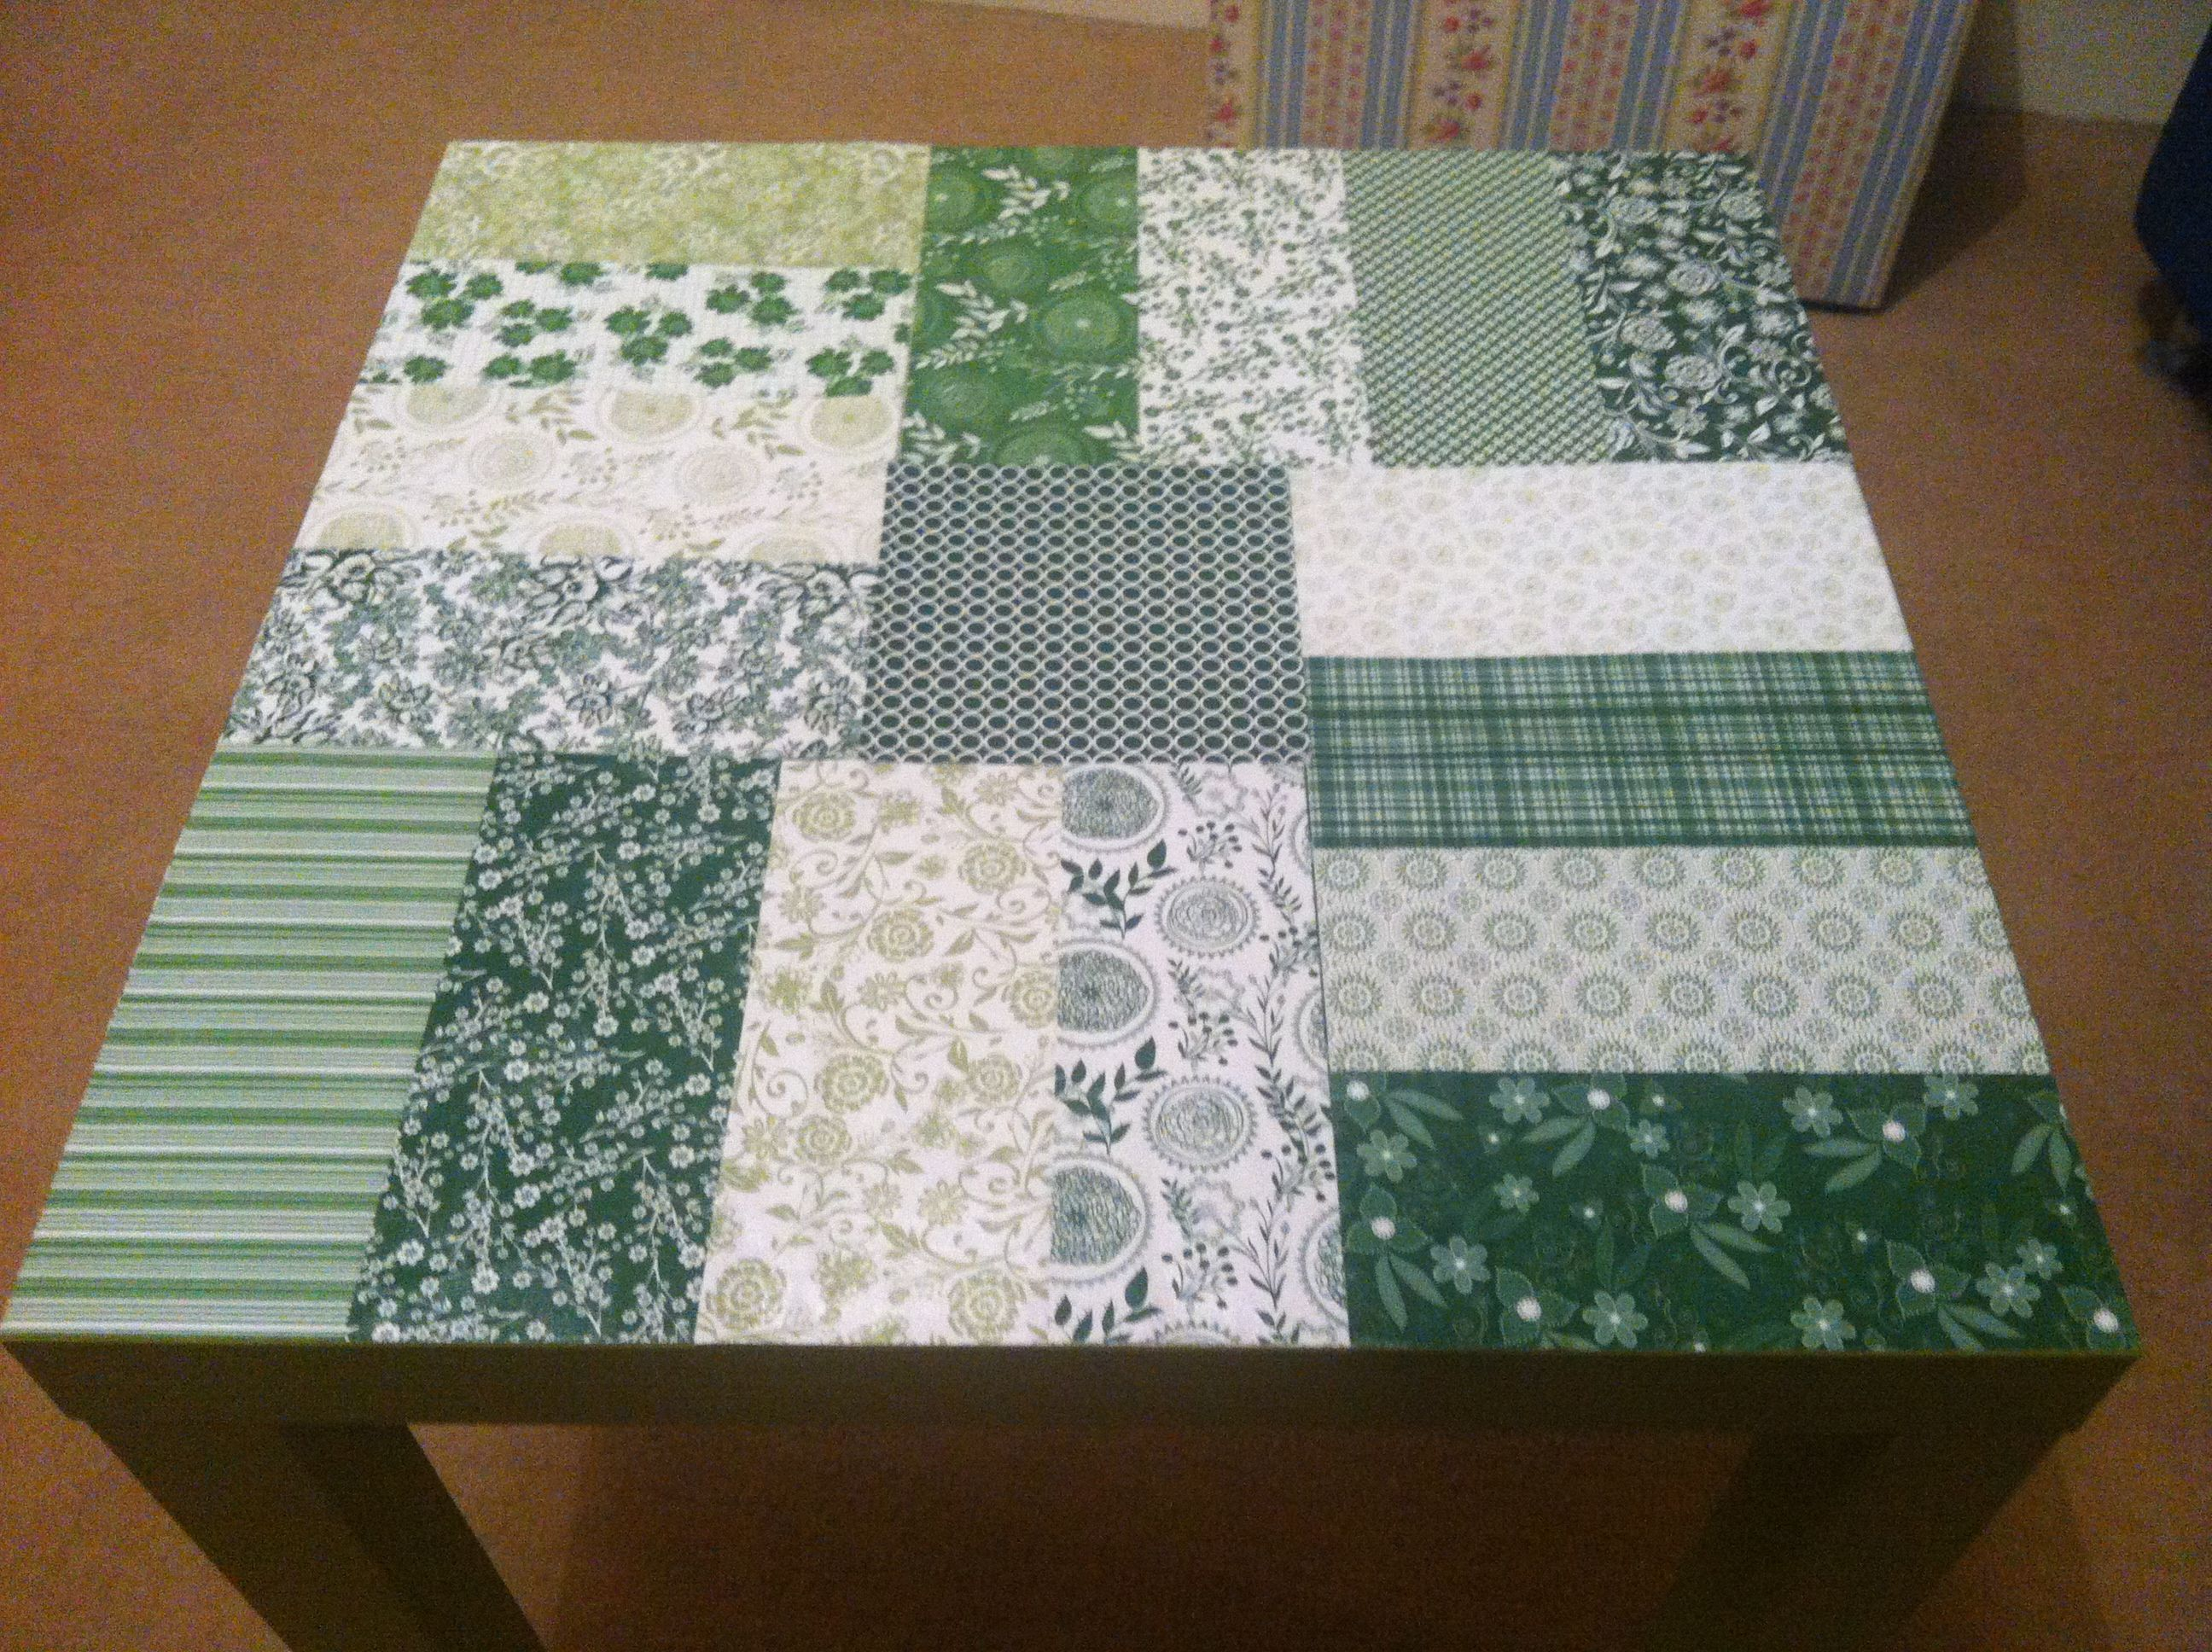 Ikea LACK table revamped using decoupage